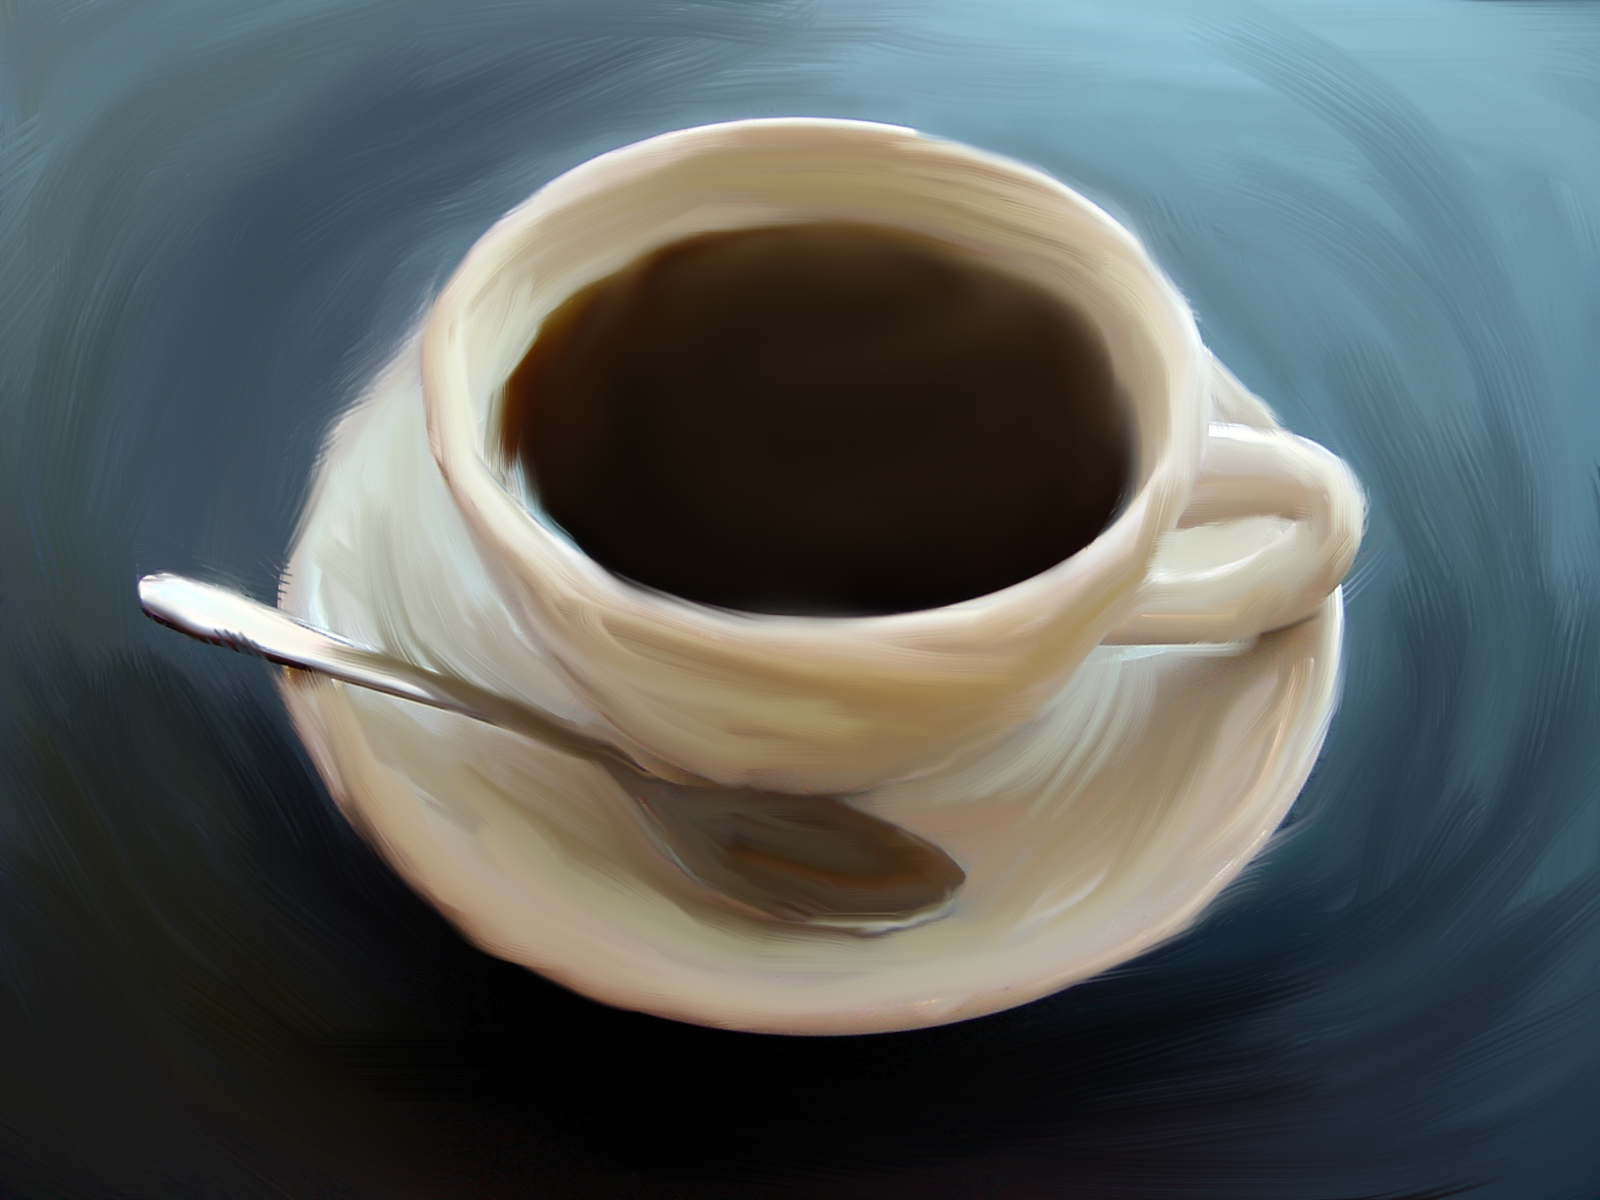 Coffee Painting by VeepVoopVop on DeviantArt